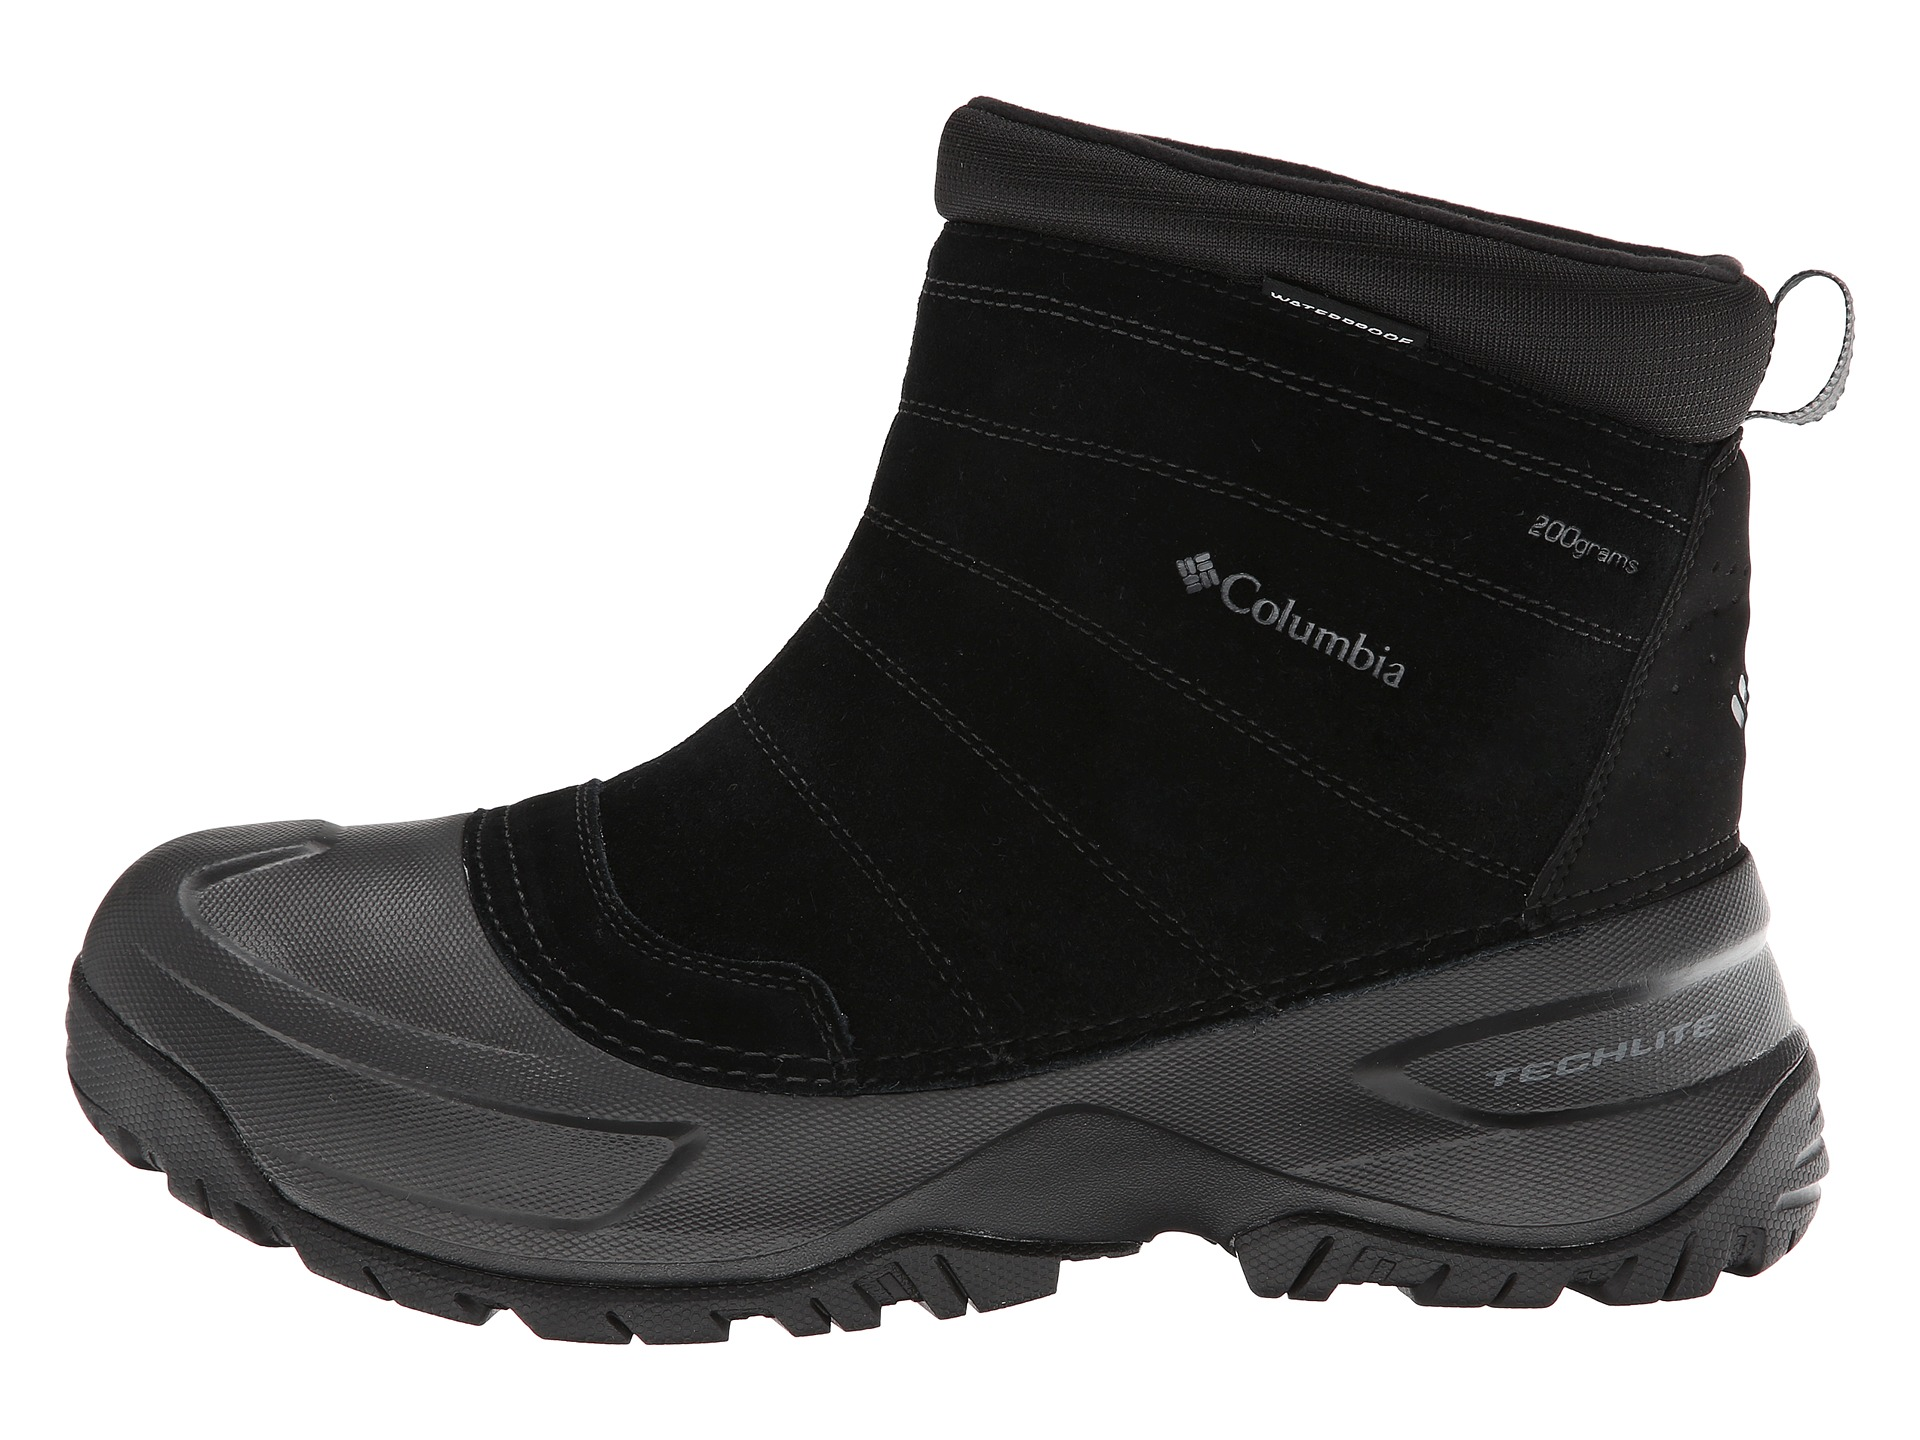 Columbia Slip On Snow Boots | Santa Barbara Institute for